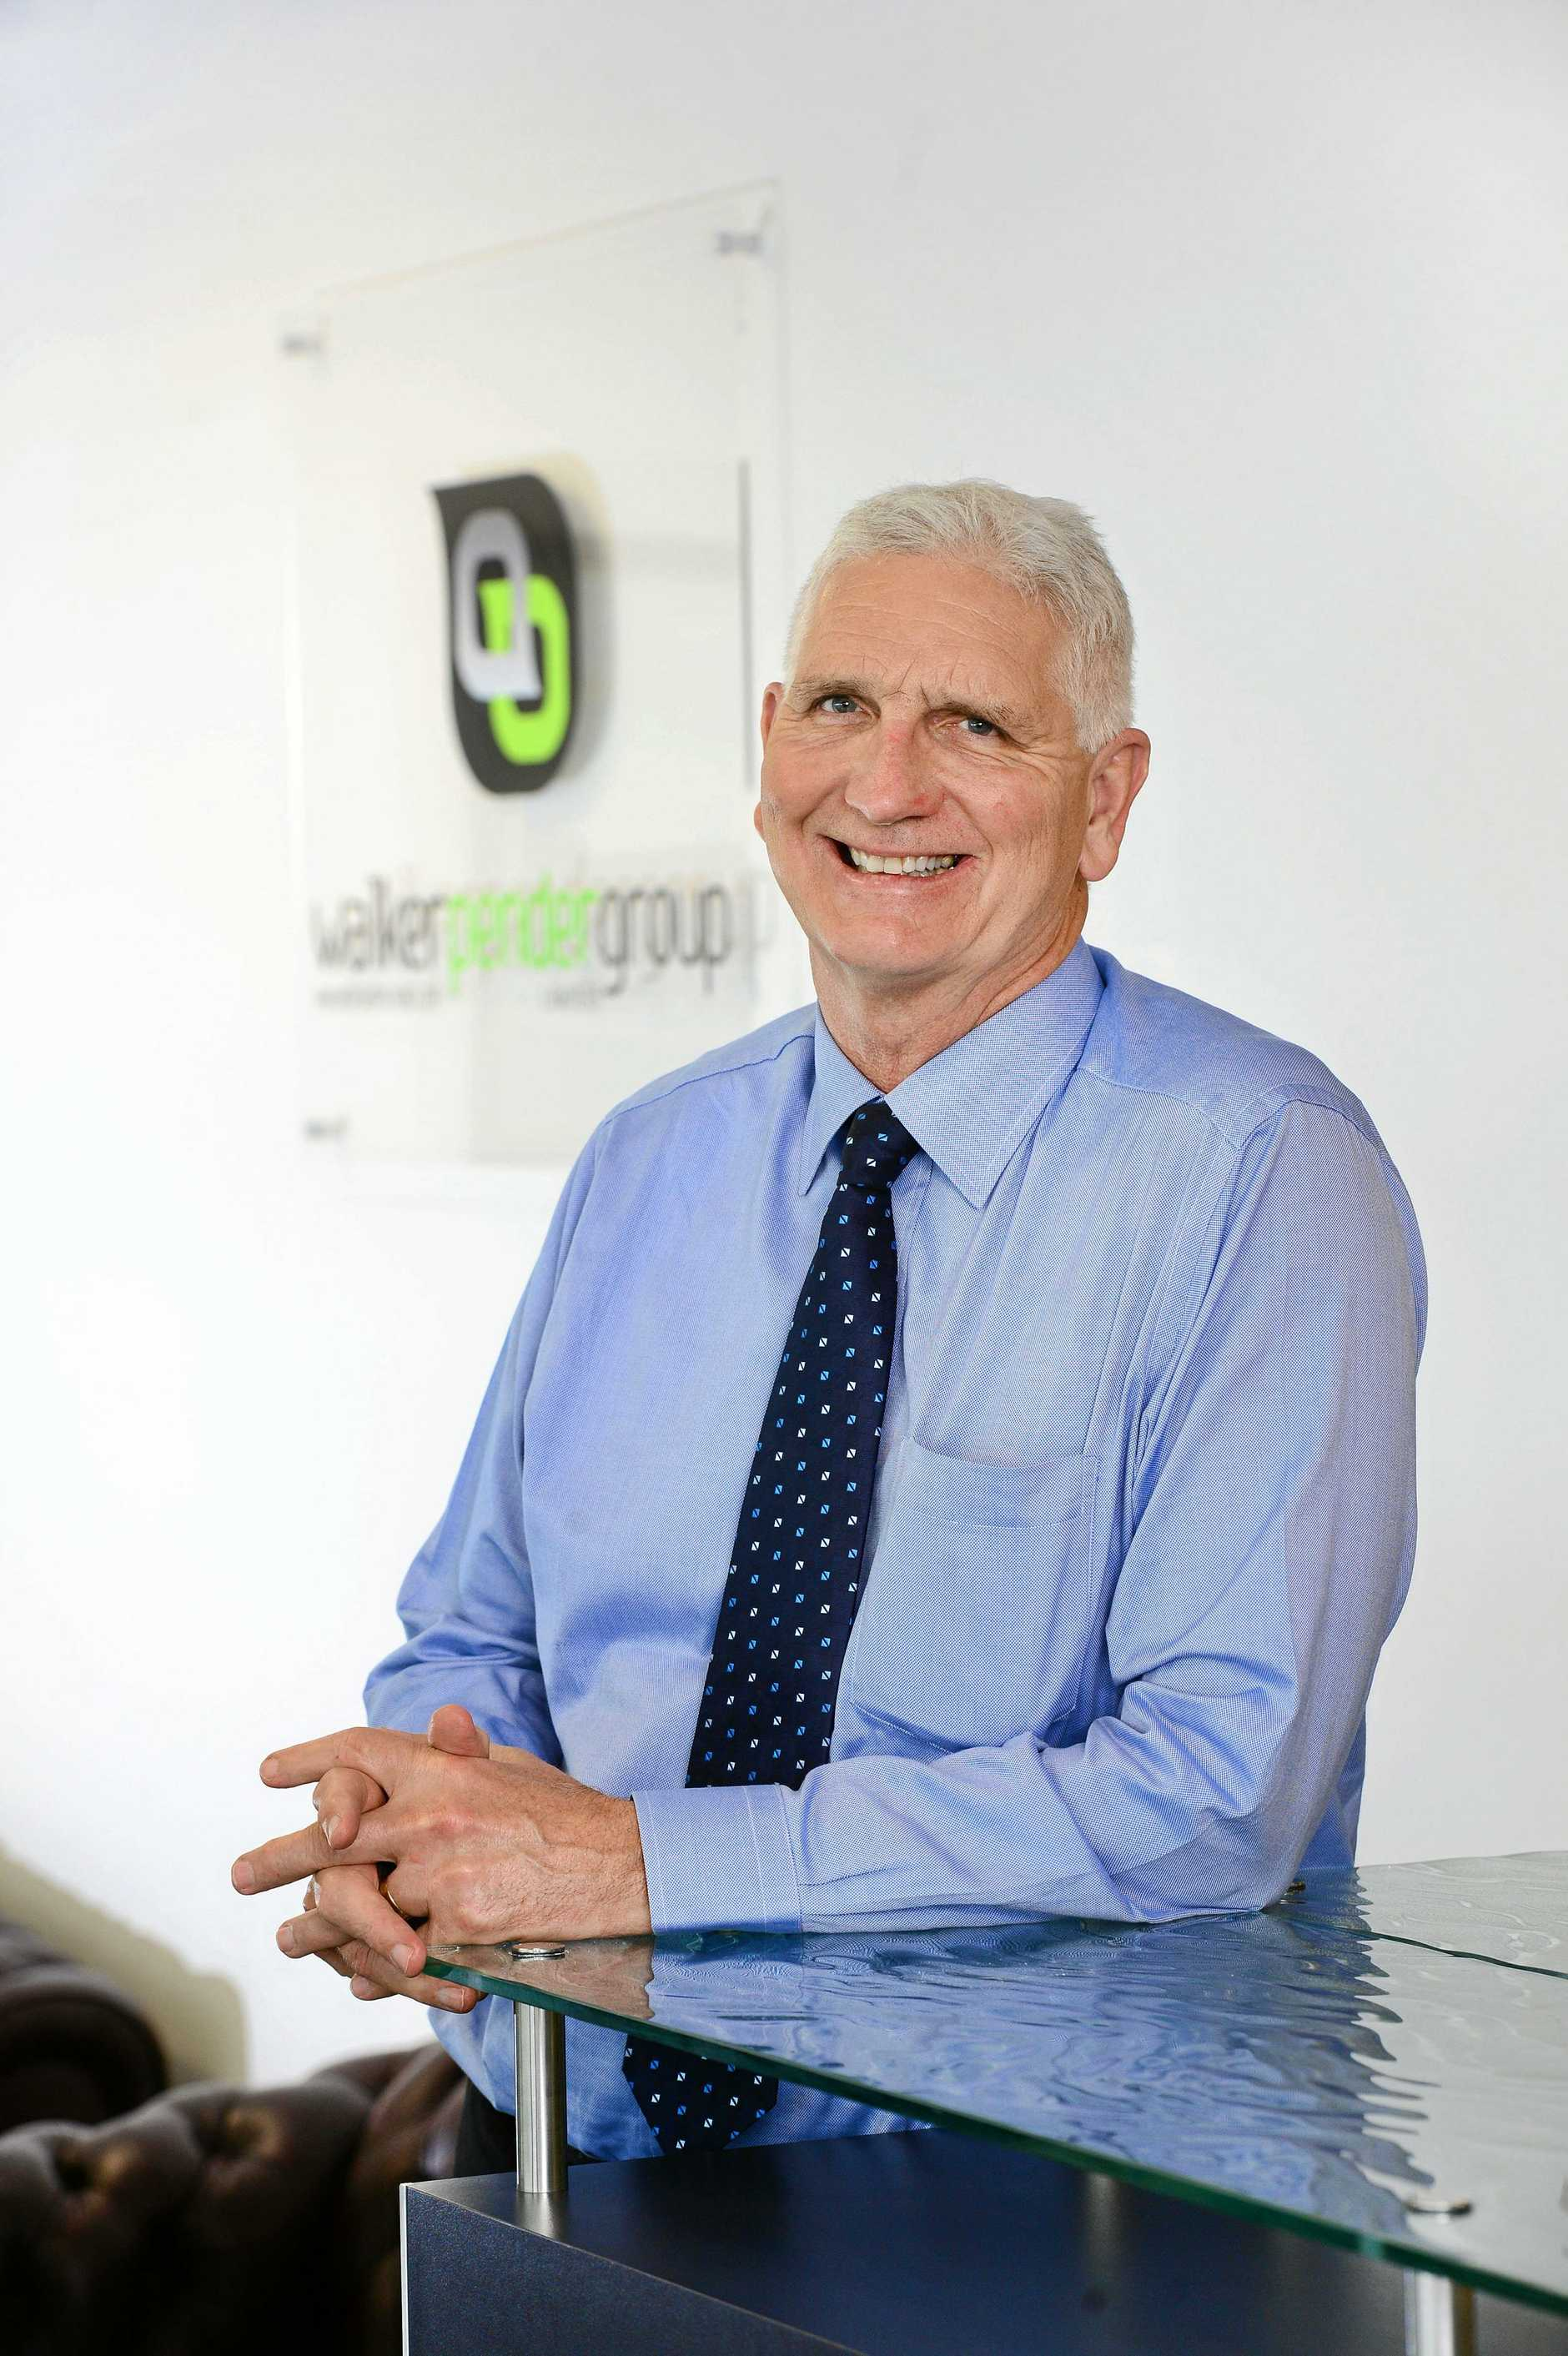 Gerard Pender is a senior director of one of the largest legal practices in the Ipswich and Springfield area. Gerard has practised as a solicitor in the Ipswich area for almost 40 years firstly as a partner with his father in Pender & Pender and then as a partner and director of Walker Pender Group Pty Ltd.